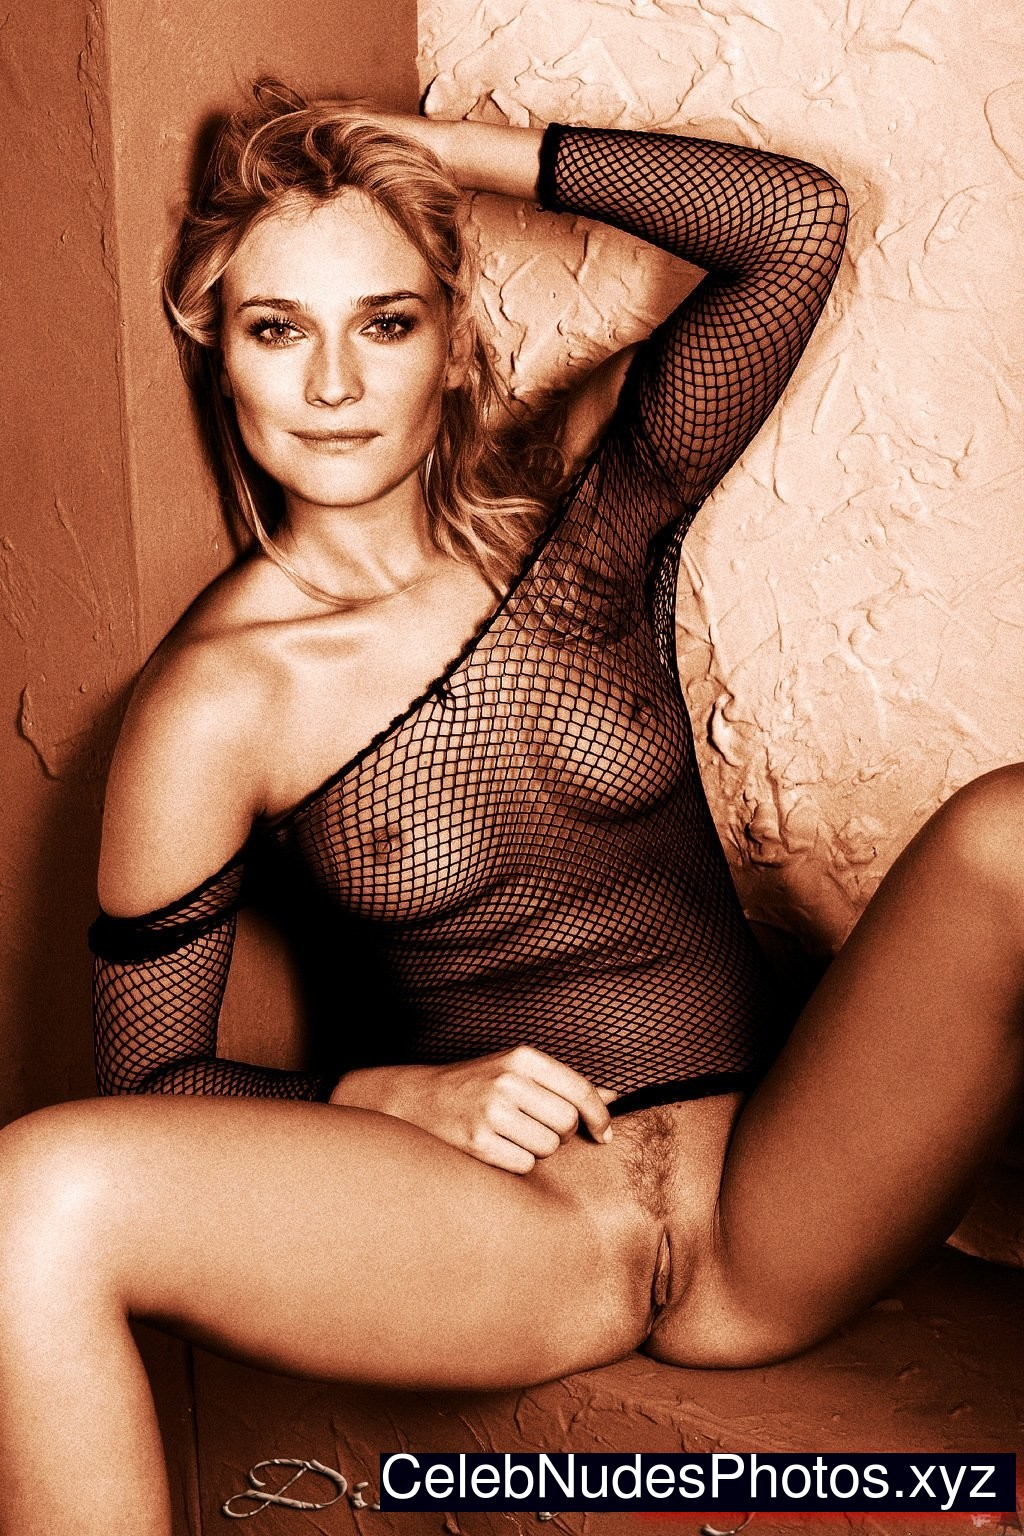 nude photos of actress diane kruger